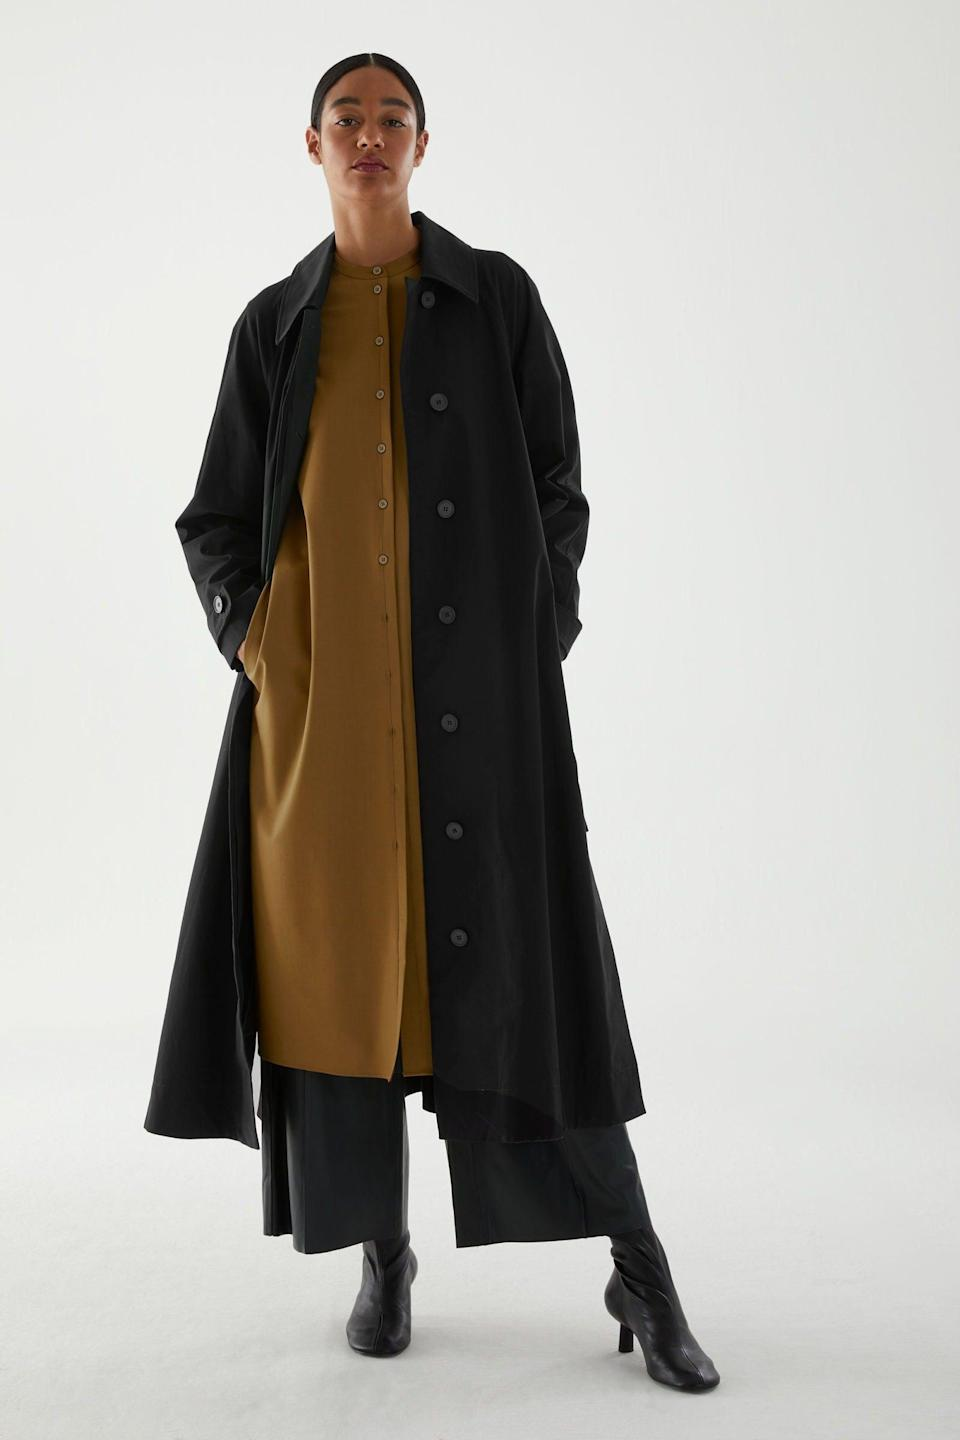 """<br><br><strong>COS</strong> Organic Cotton Oversized Trench, $, available at <a href=""""https://www.cosstores.com/en_gbp/women/womenswear/coats-and-jackets/coats/product.organic-cotton-oversized-trench-coat-black.0891555002.html?"""" rel=""""nofollow noopener"""" target=""""_blank"""" data-ylk=""""slk:COS"""" class=""""link rapid-noclick-resp"""">COS</a>"""